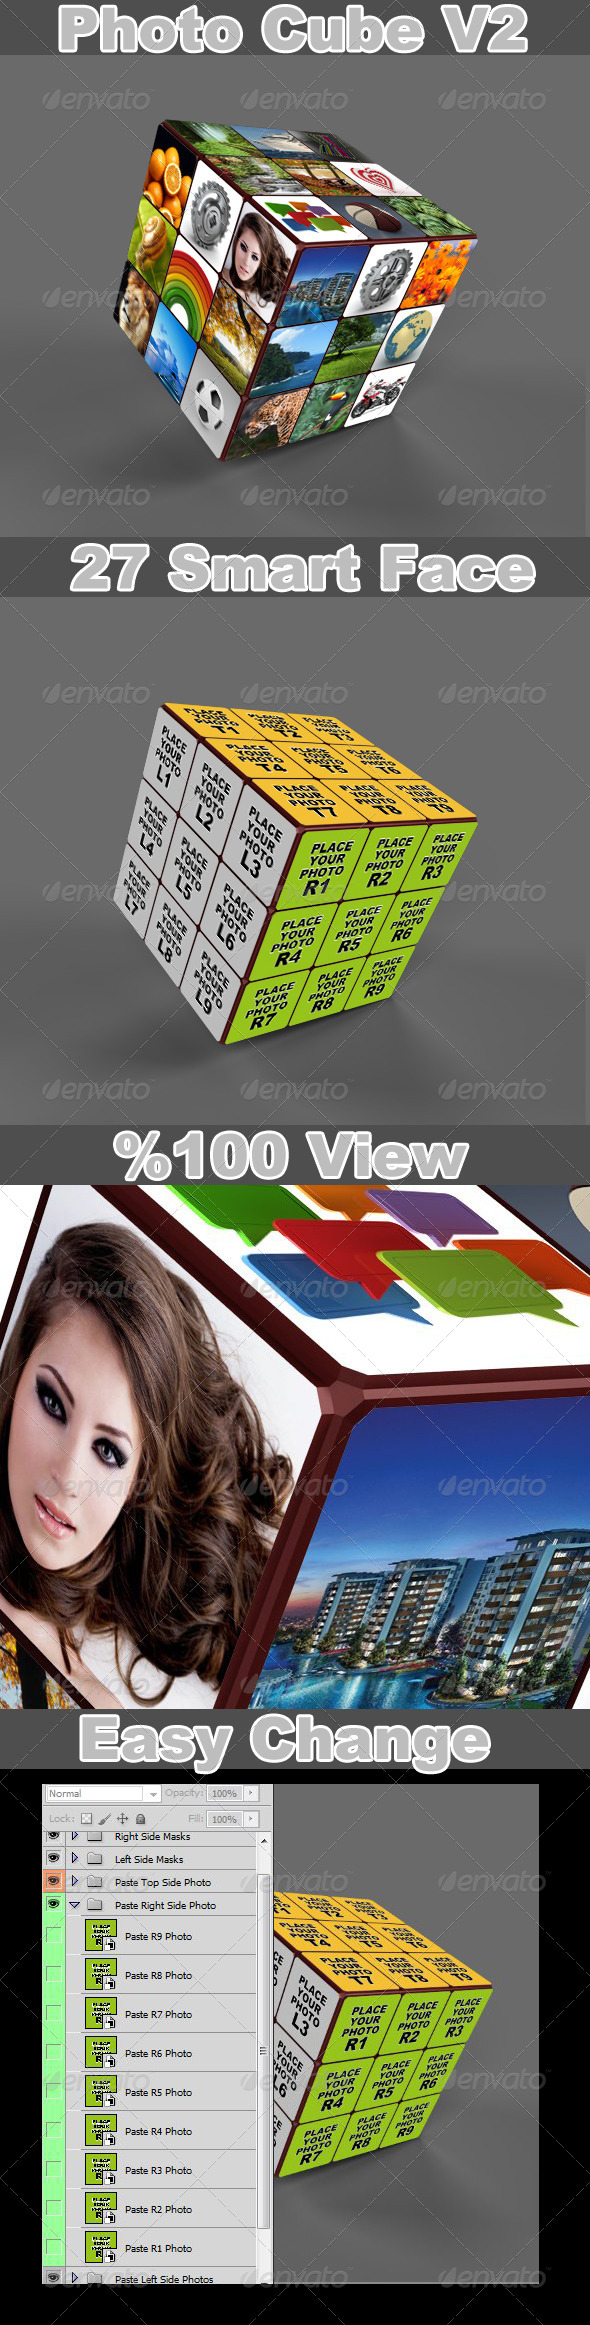 GraphicRiver Photo Cube V2 4452875